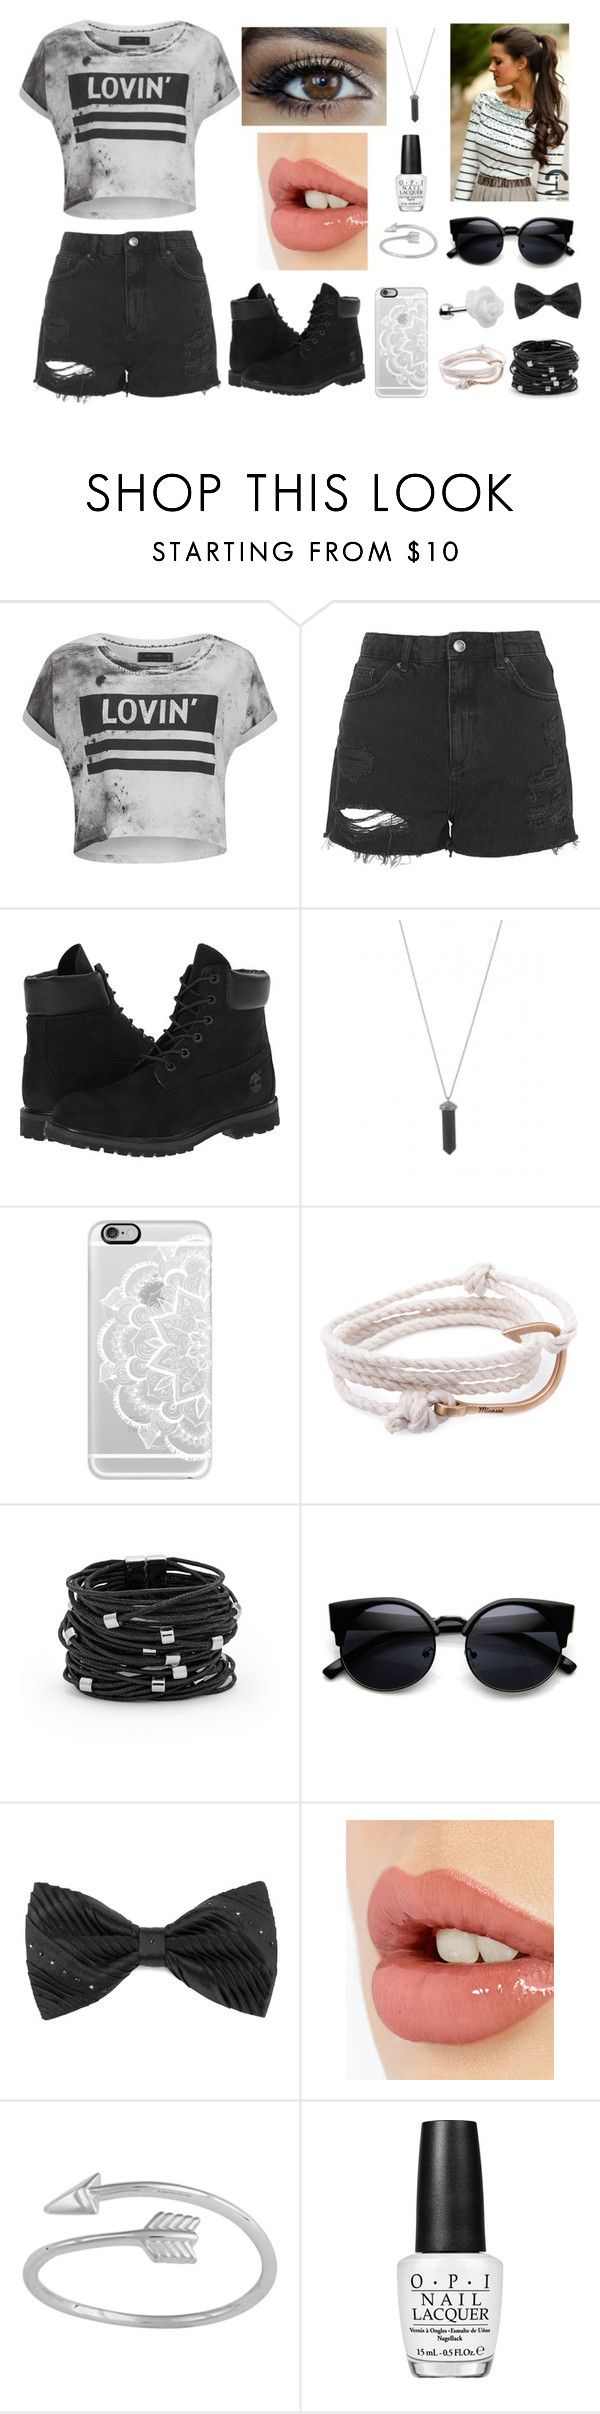 """""""black and white"""" by tashadasz98 on Polyvore featuring Religion Clothing, Topshop, Timberland, Karen Kane, Casetify, MIANSAI, Chico's, Charlotte Tilbury, OPI and women's clothing"""